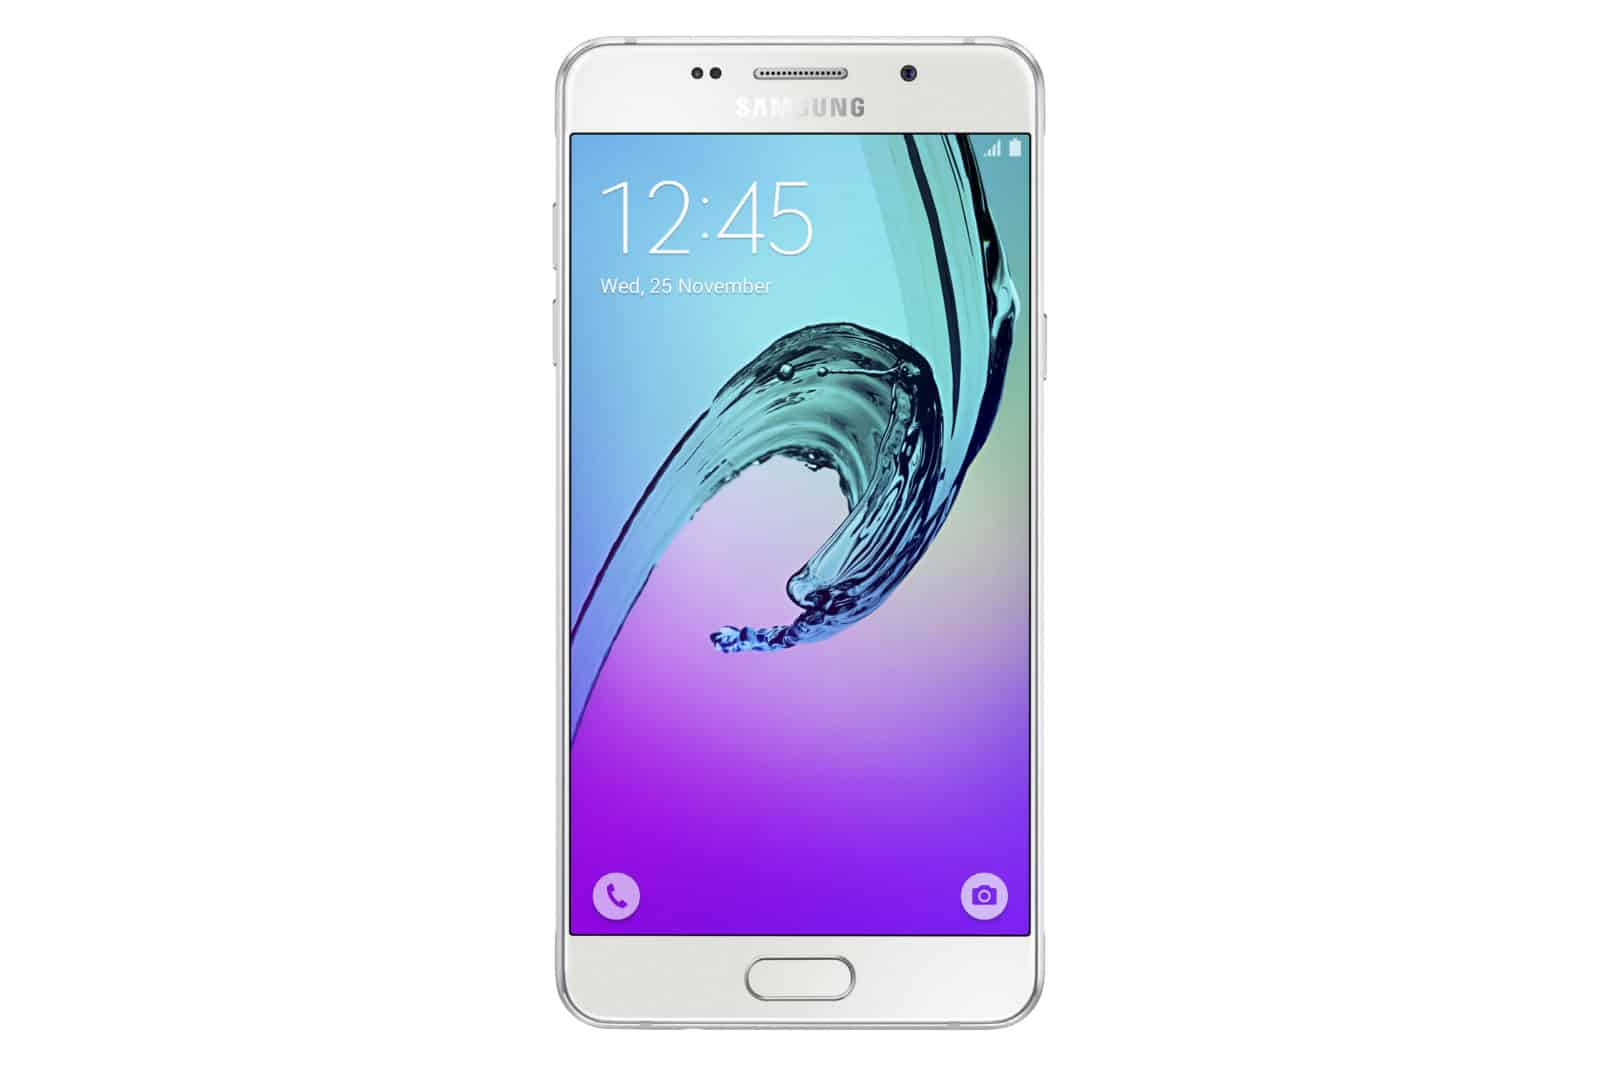 Samsung Galaxy A3 2016 Gets October 2017 Security Patch